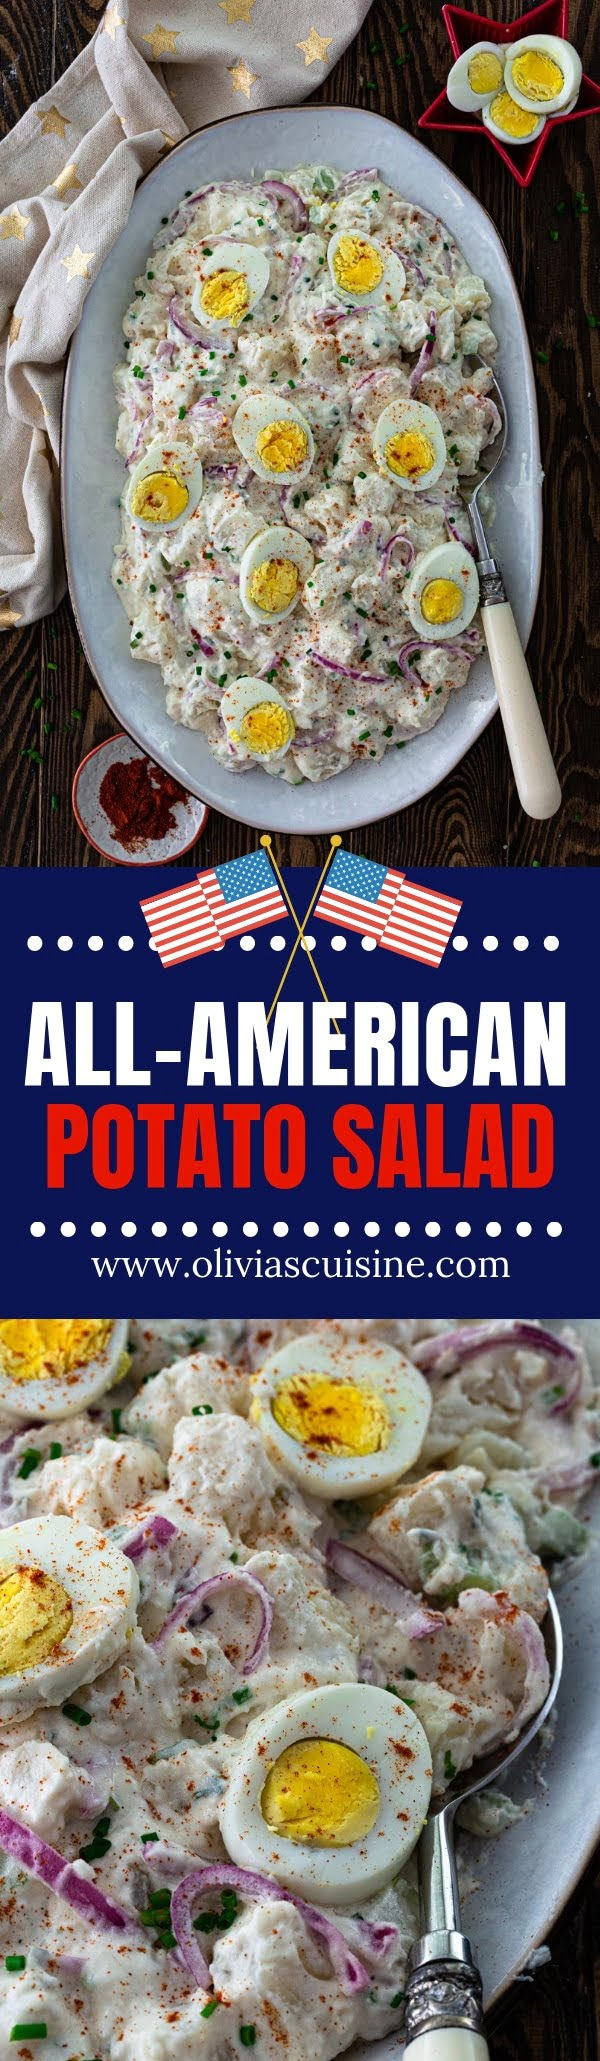 All-American Potato Salad | www.oliviascuisine.com | A summer celebration is not the same without a classic American Potato Salad! Creamy, tangy and easily customizable so you can make it your own. (Recipe and food photography by @oliviascuisine.) #potatosalad #BBQ #sides #picnic #american #potato